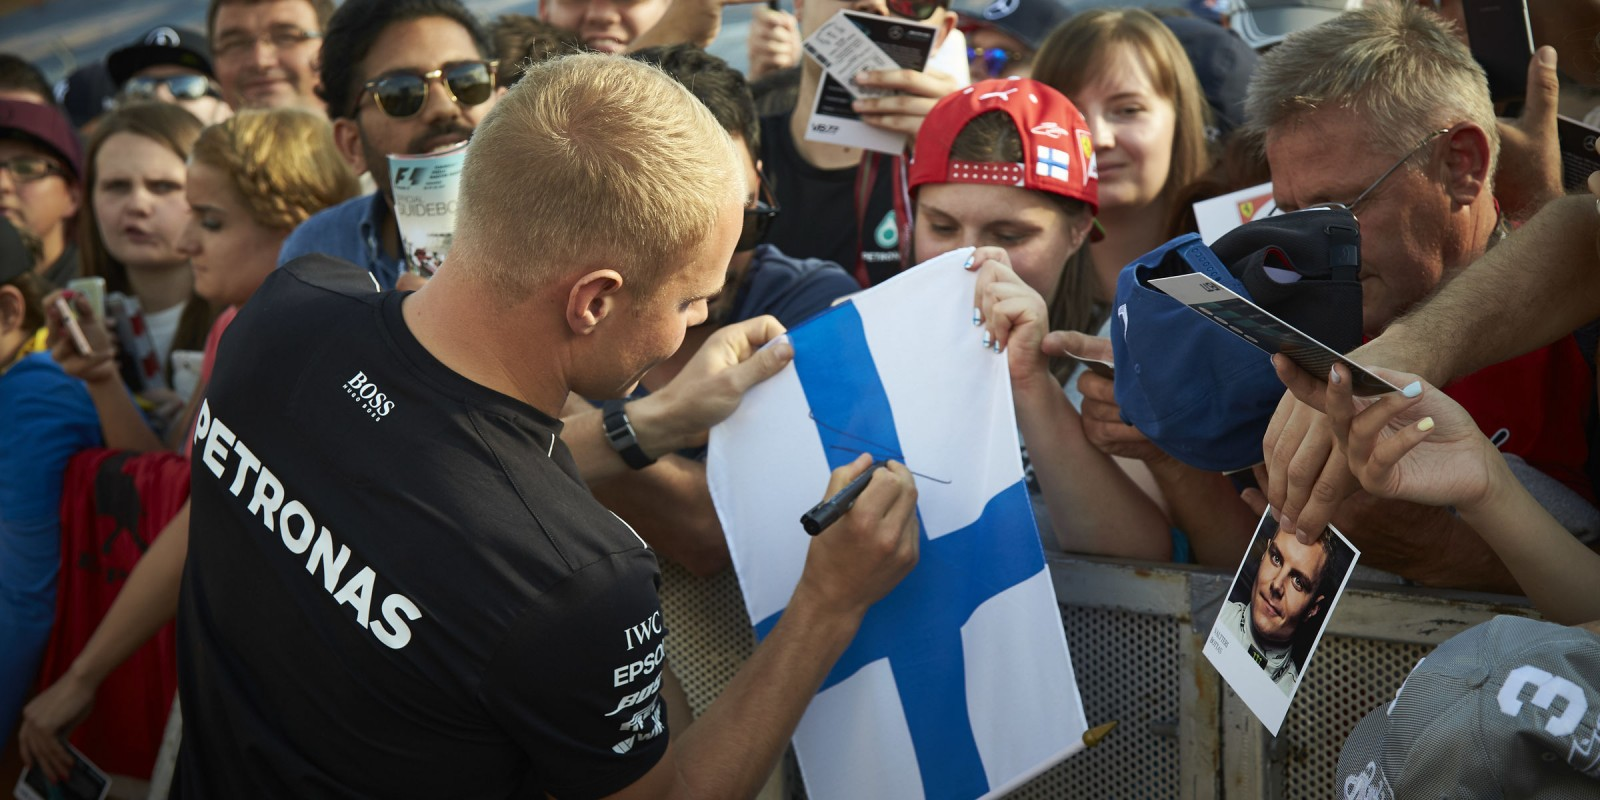 Thursday images from the 2017 Hungarian Grand Prix